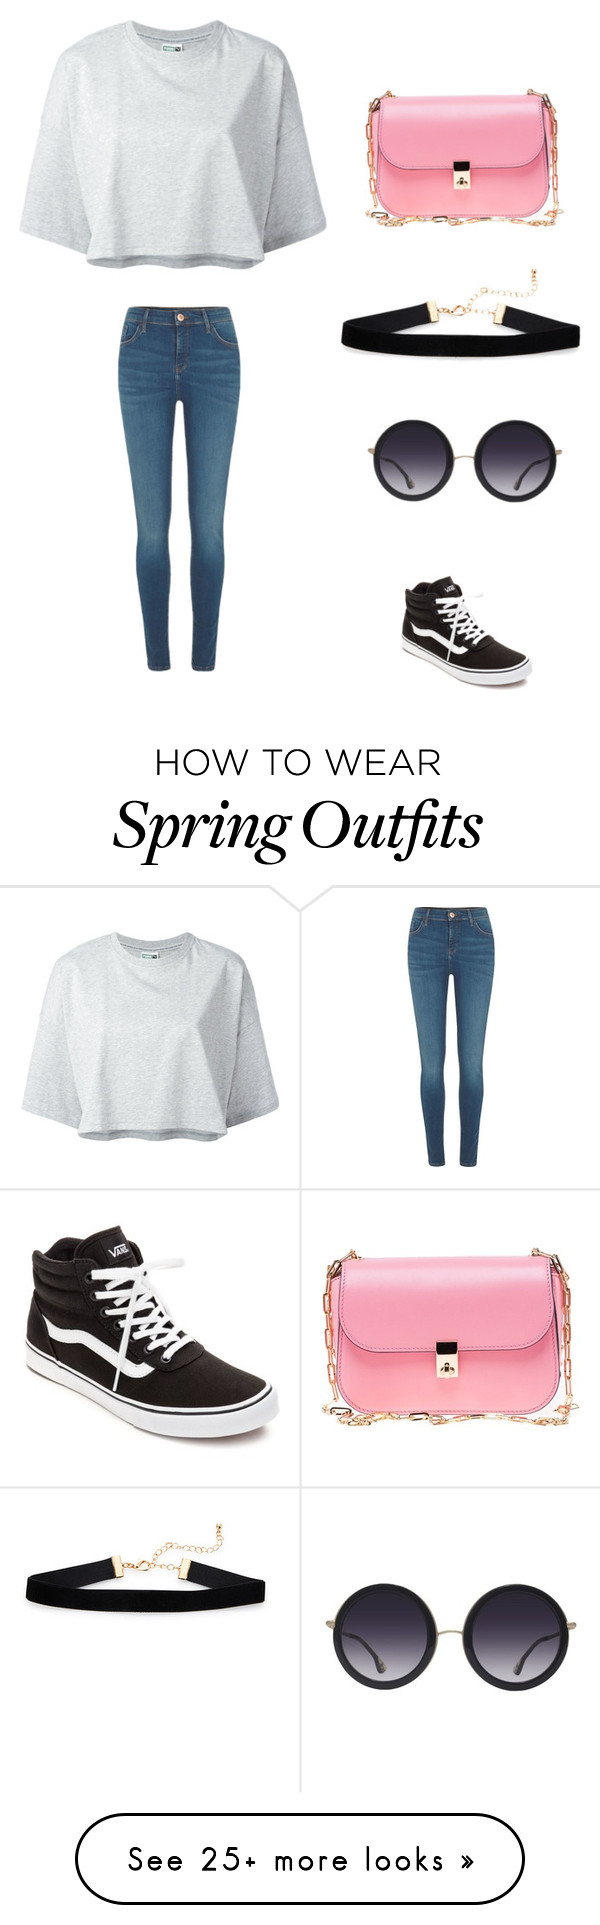 """Casual outfit for the spring"" by gisellemybell on Polyvore featuring Puma, River Island, Valentino, Vans and Alice + Olivia"